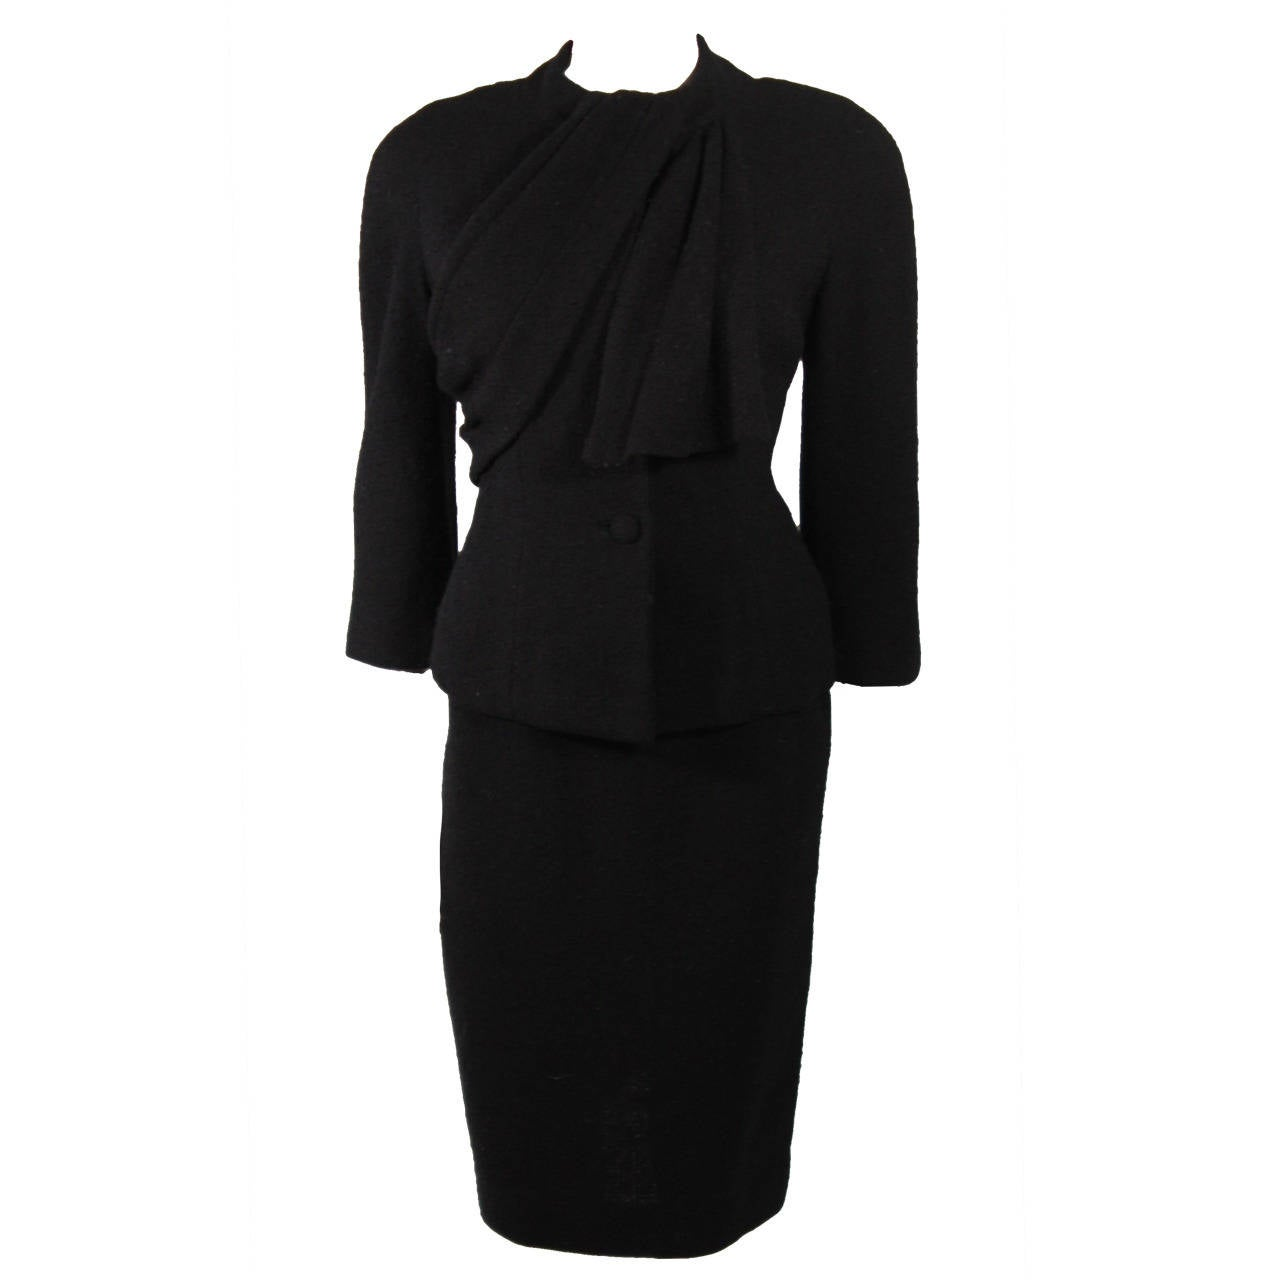 Lilli Ann San Francisco Black Wool Skirt Suit with Draping